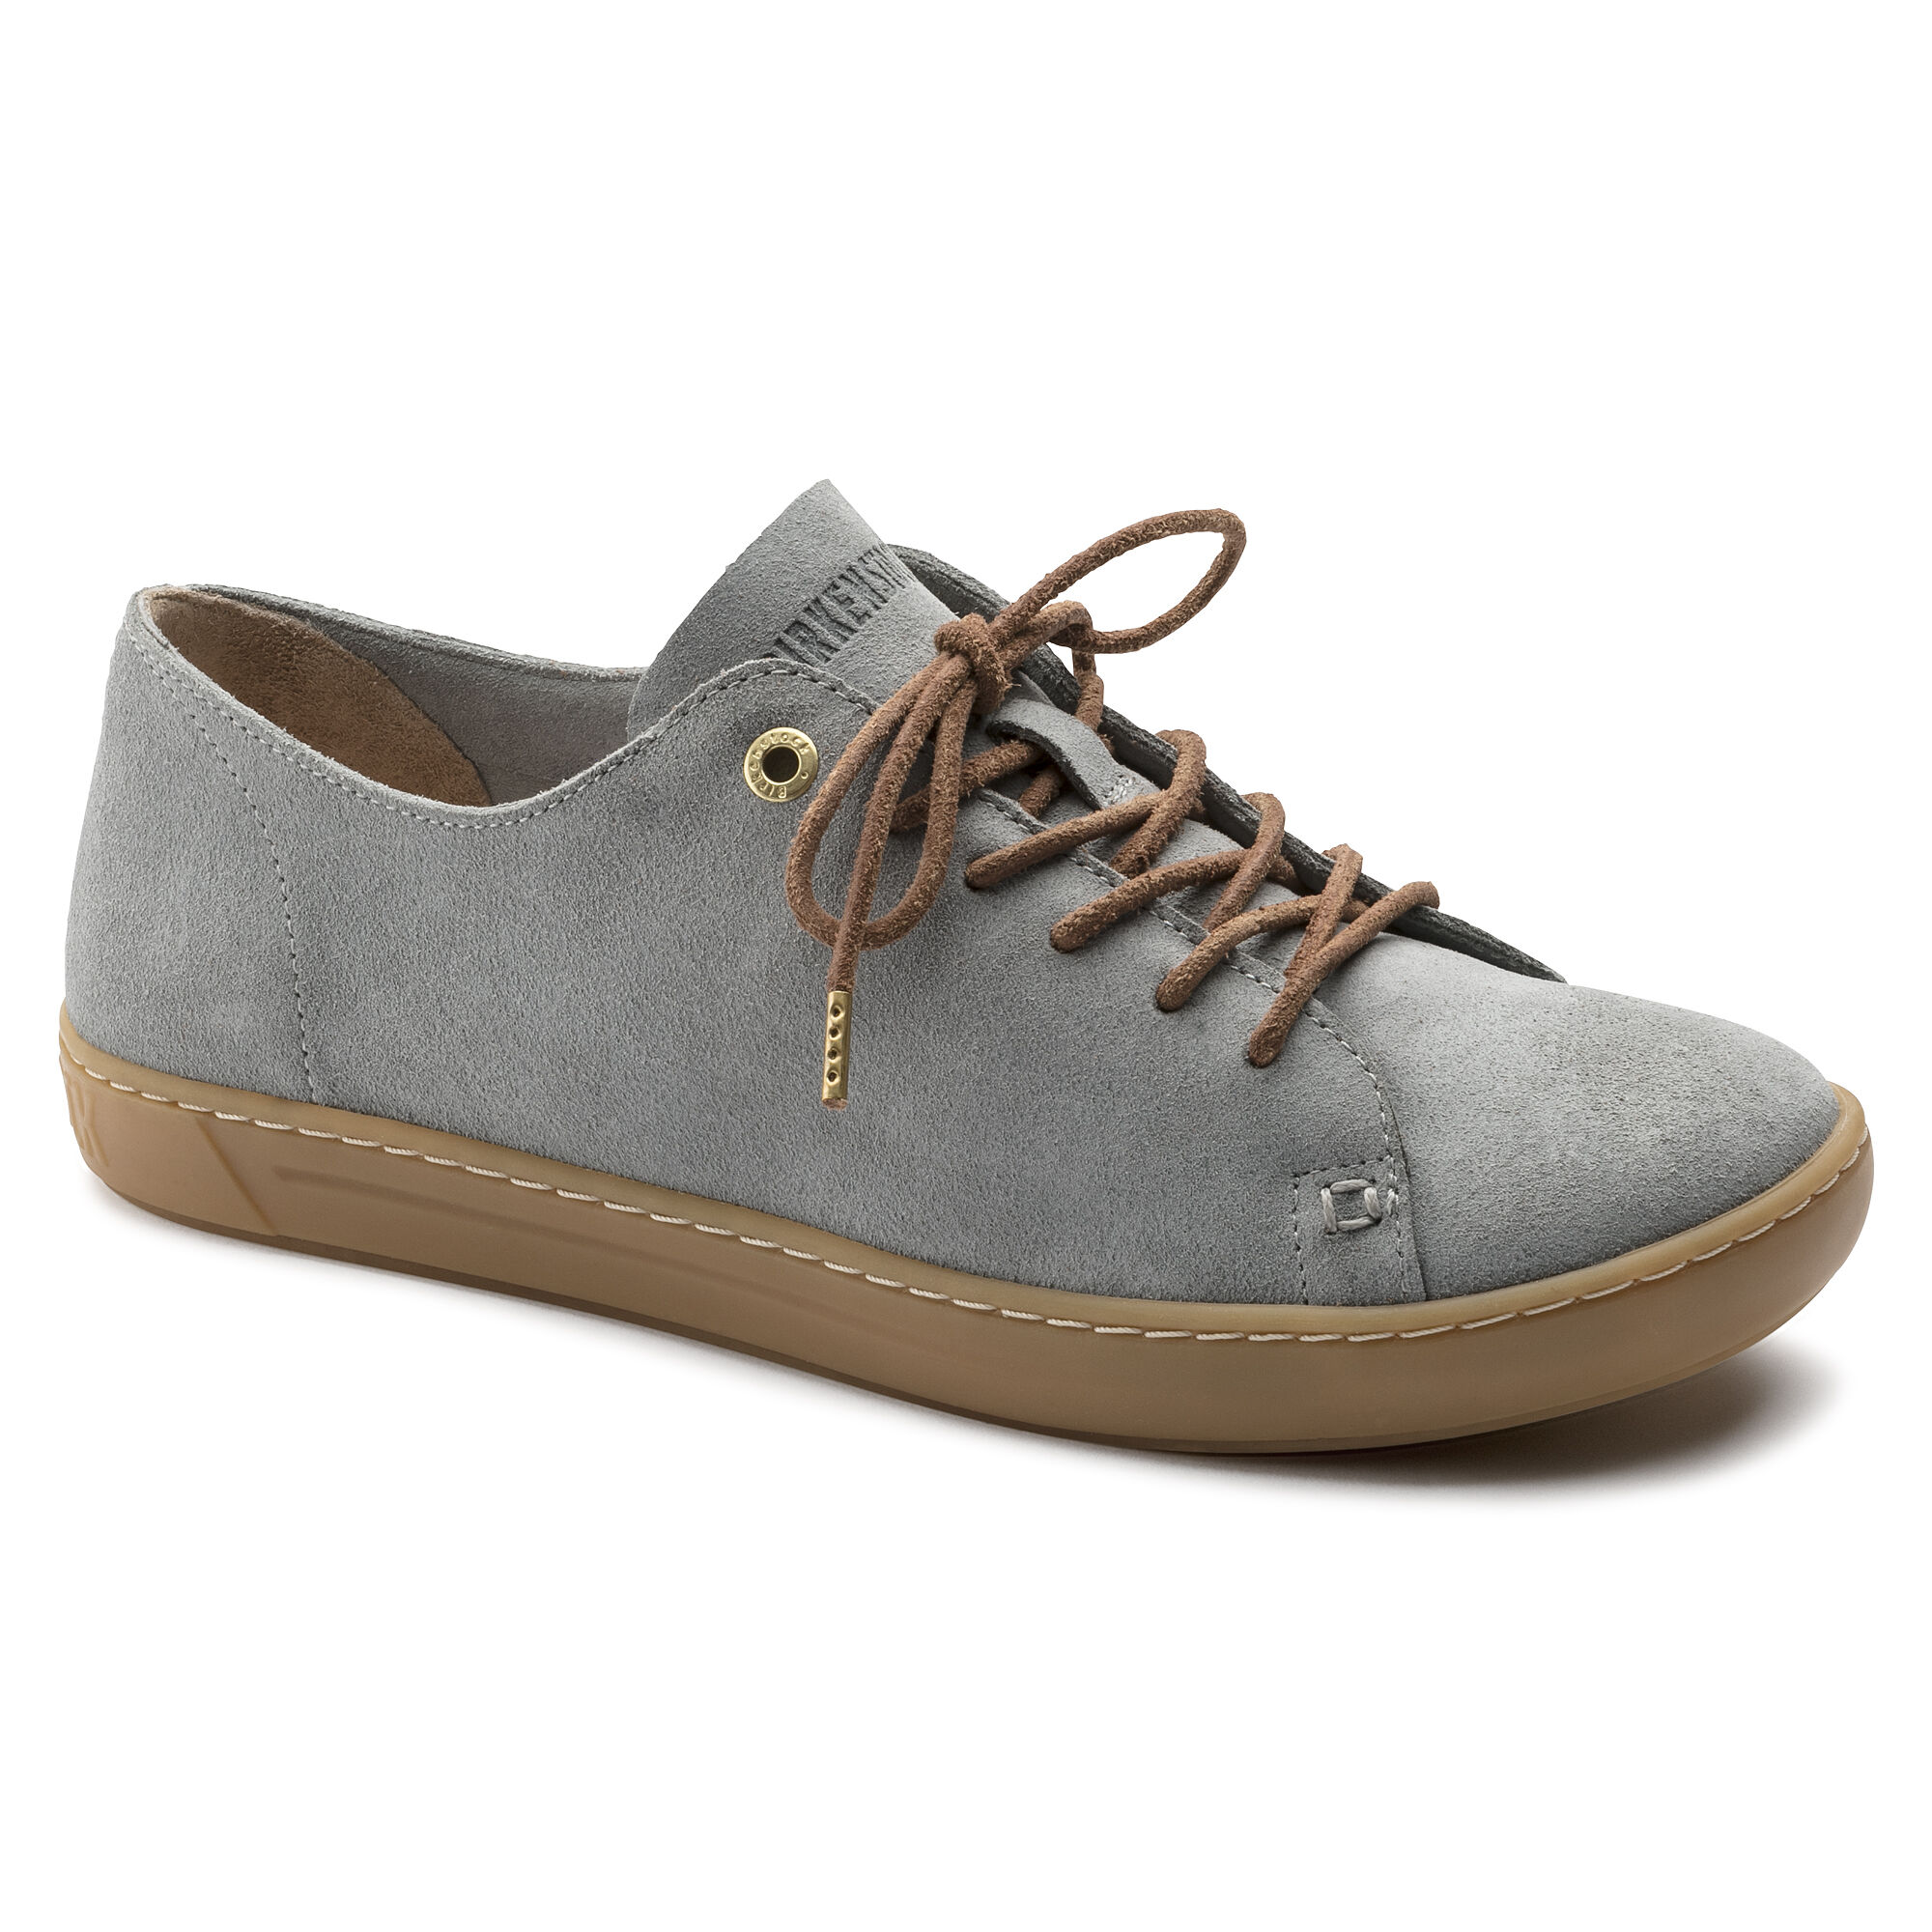 Arran Suede Leather Sky